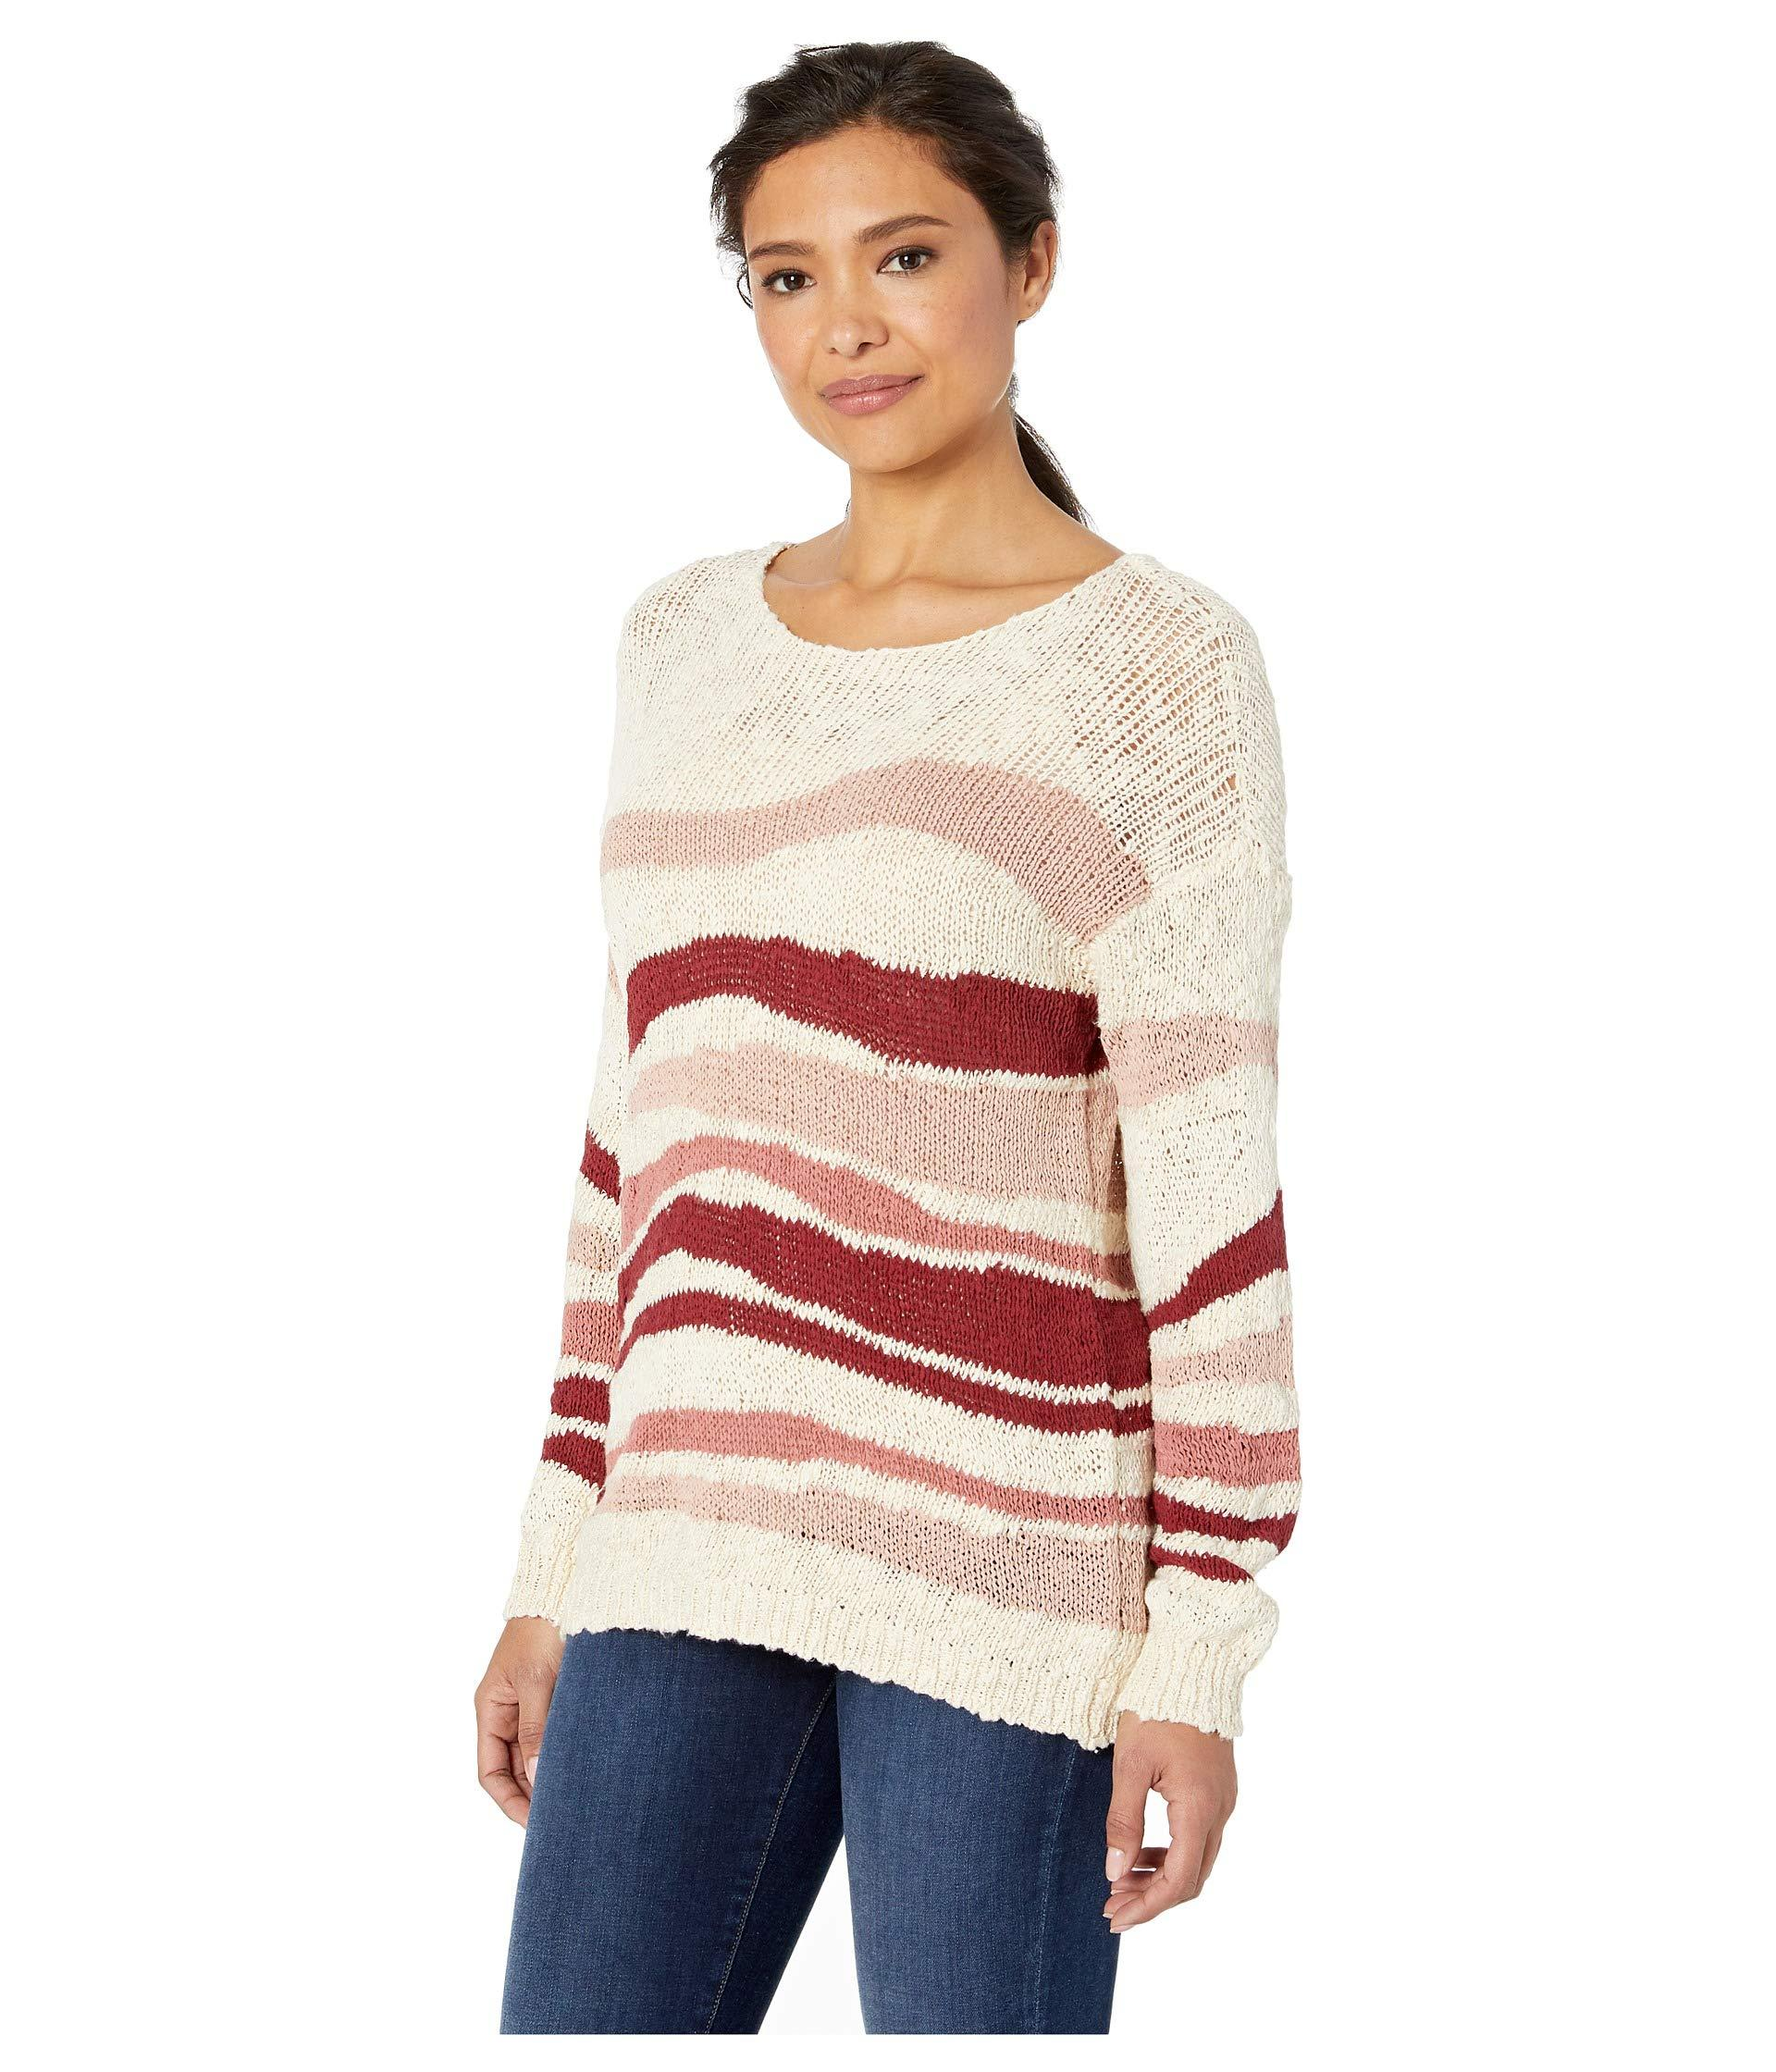 fec312efc7b7c Lyst - Two By Vince Camuto Long Sleeve Variegated Jersey Stripes Sweater  (sand Drift) Women's Sweater in Natural